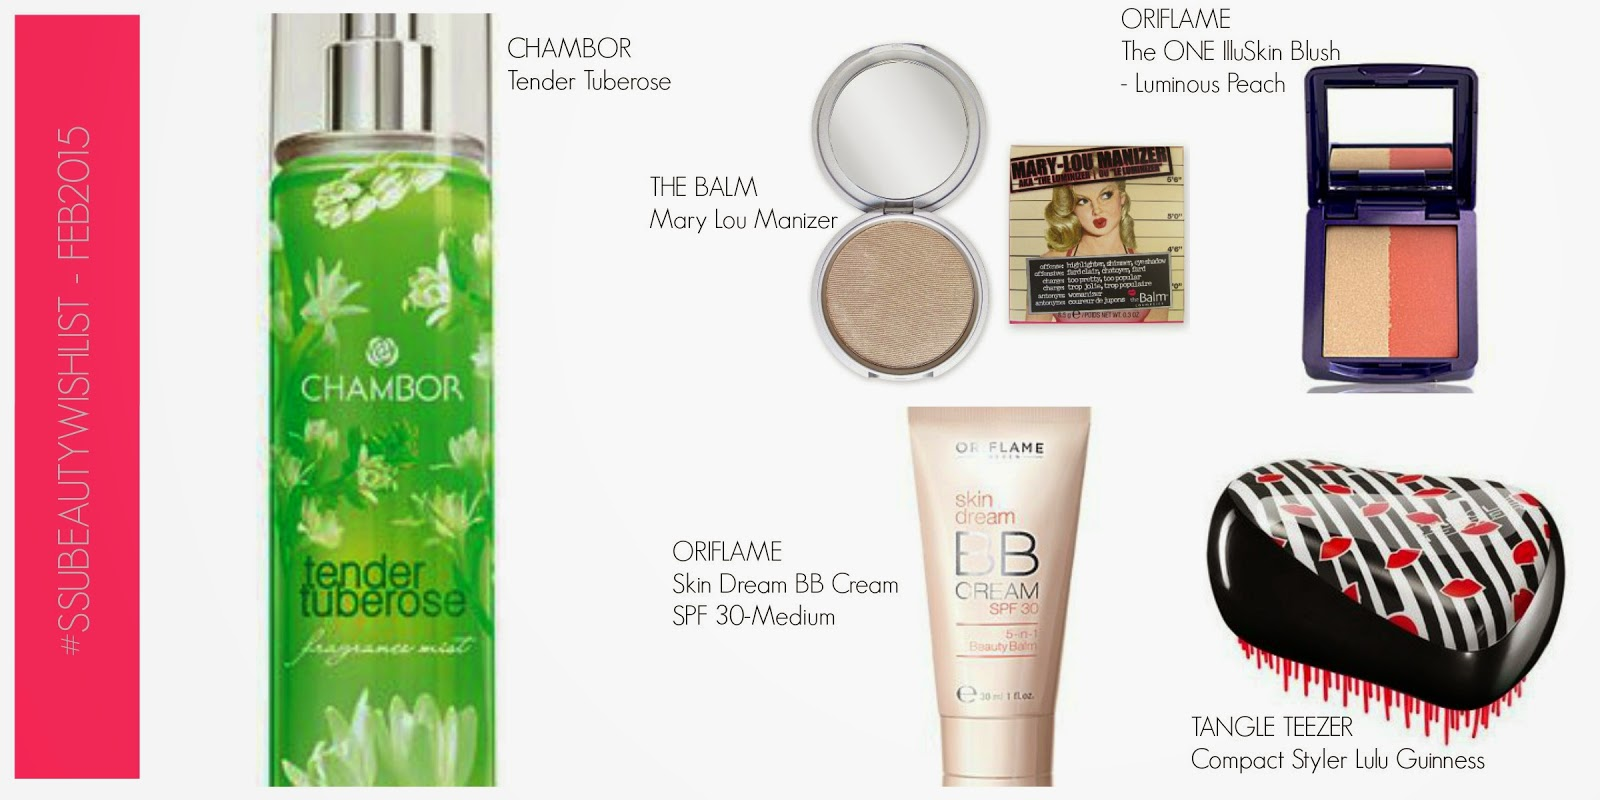 #SSUBEAUTYWISHLIST - Oriflame Blush, The Balm Highlighter, A Hair Detangler With Lips On It and More!